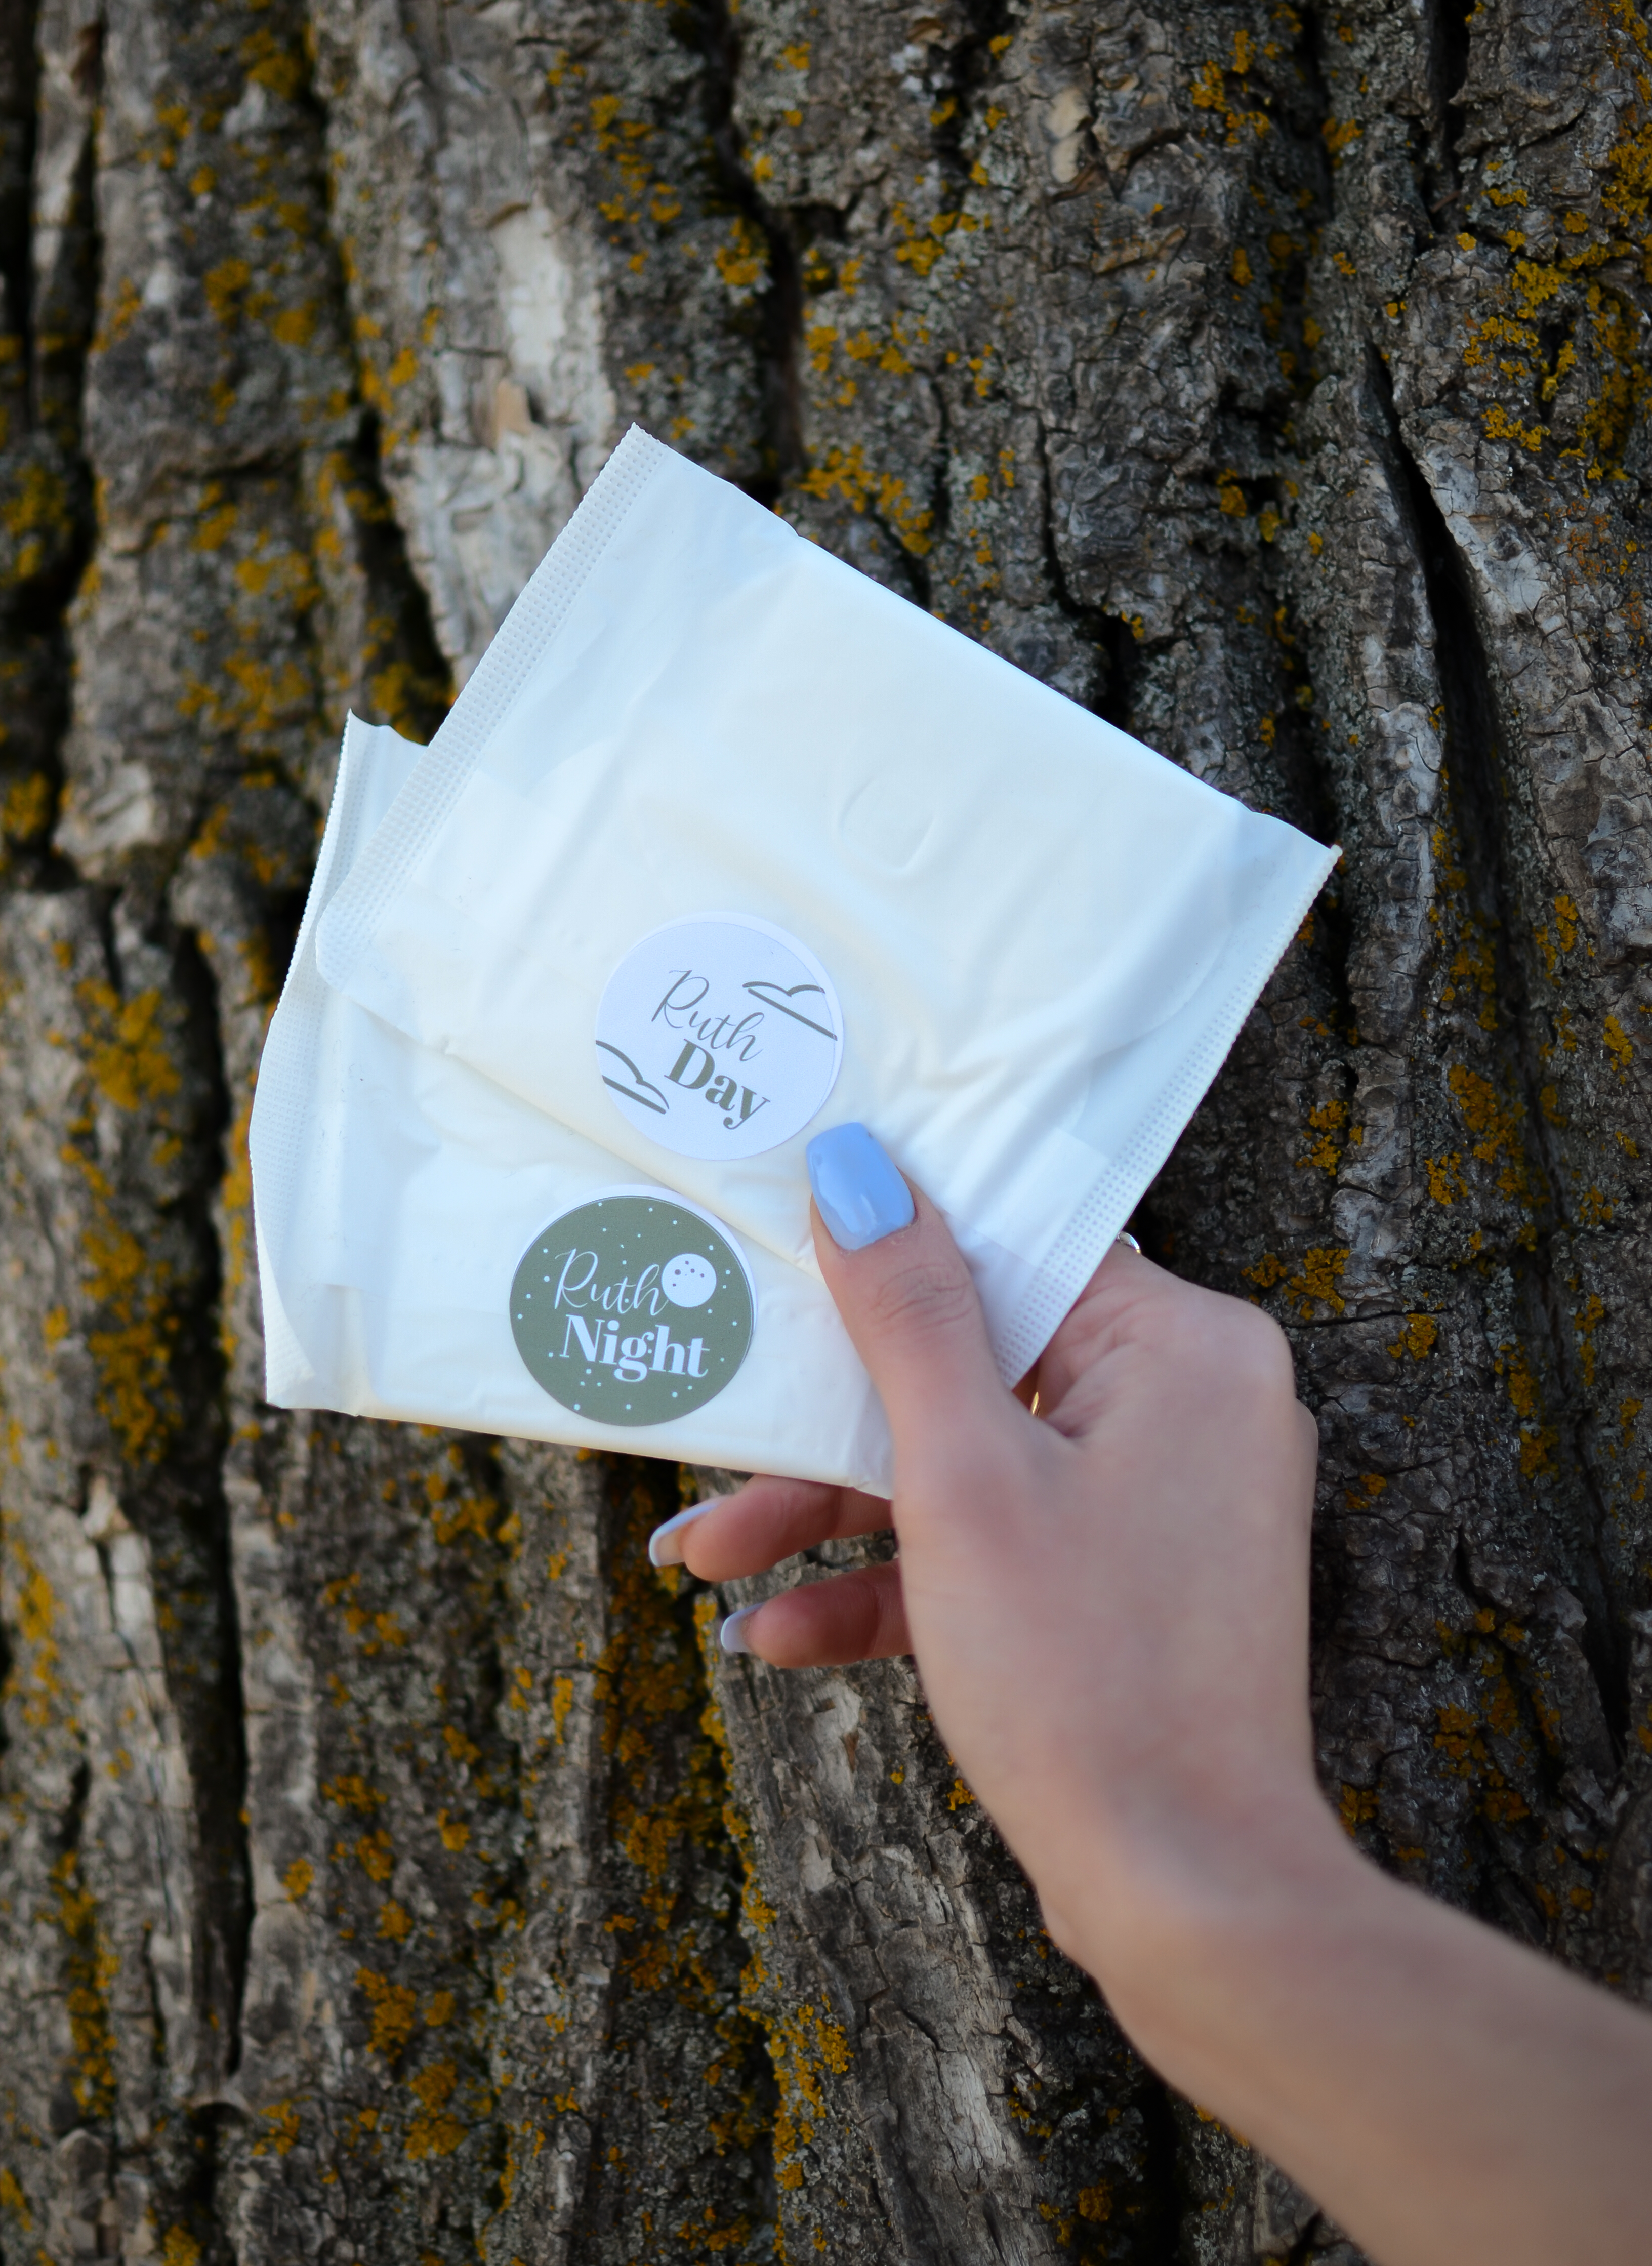 Hand holding Ruth Day Pad and Night Pads against tree trunk